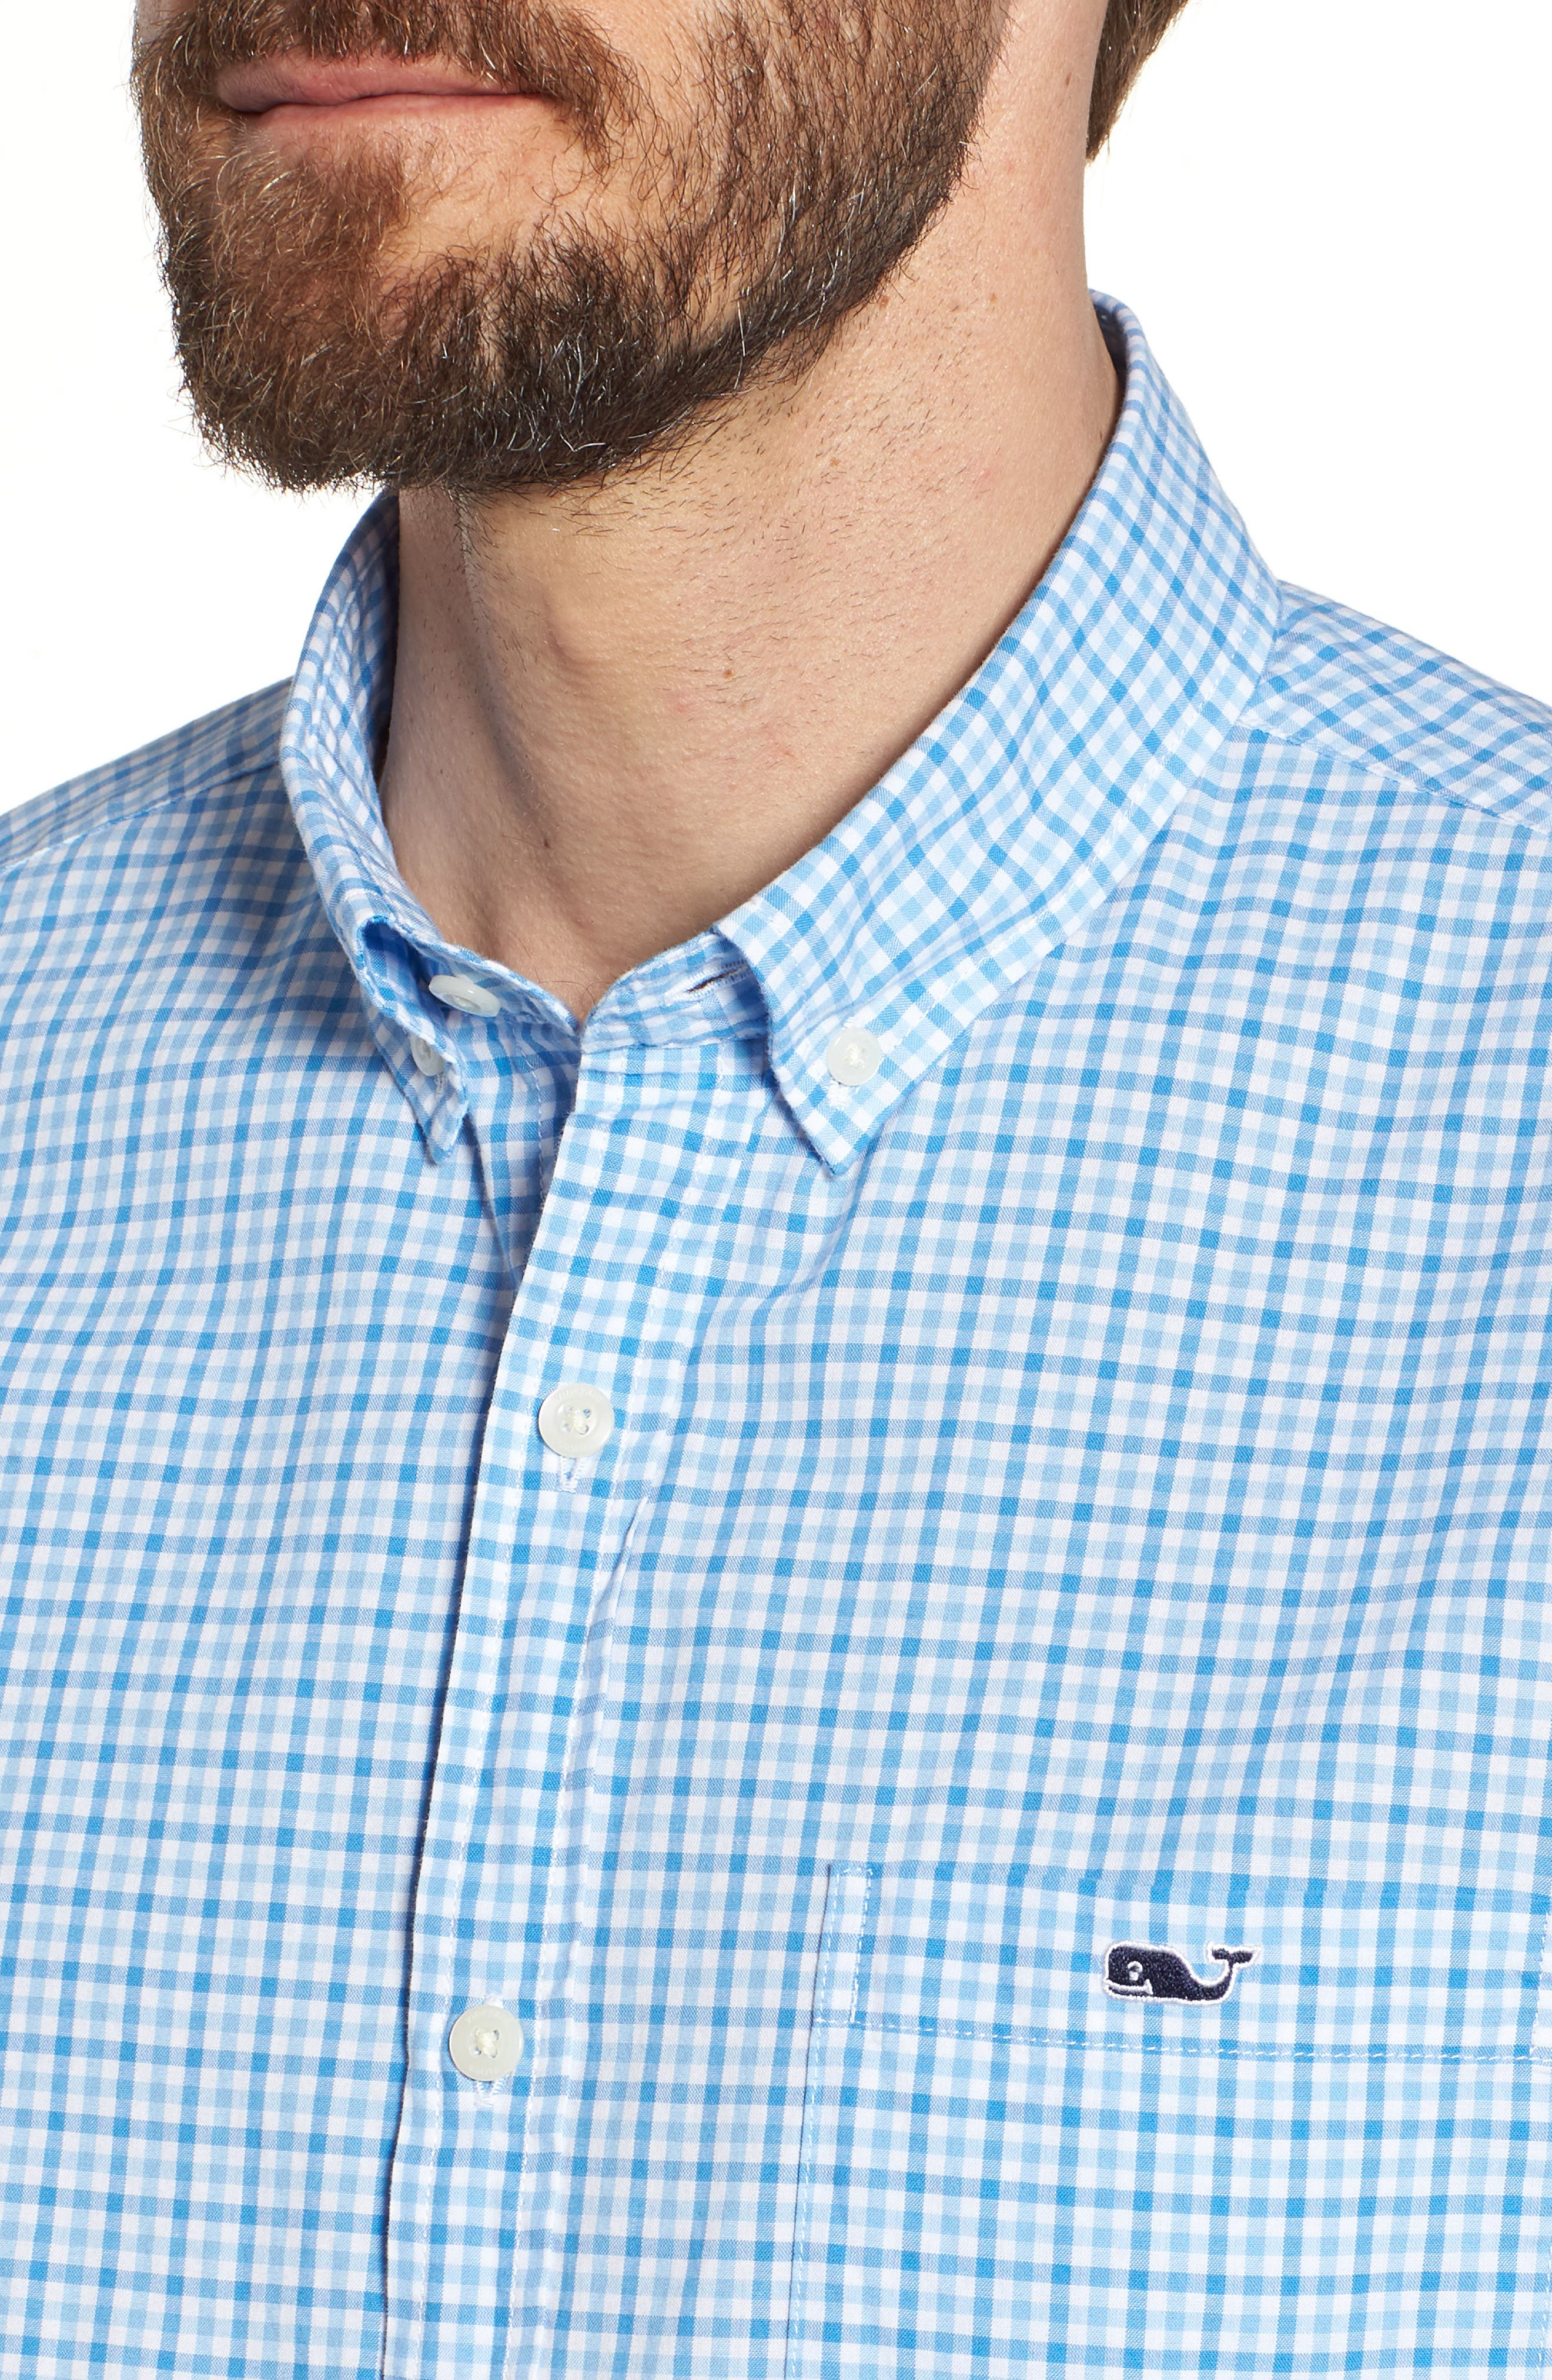 Tipsy Turtle Check Slim Fit Sport Shirt,                             Alternate thumbnail 4, color,                             Harbor Cay